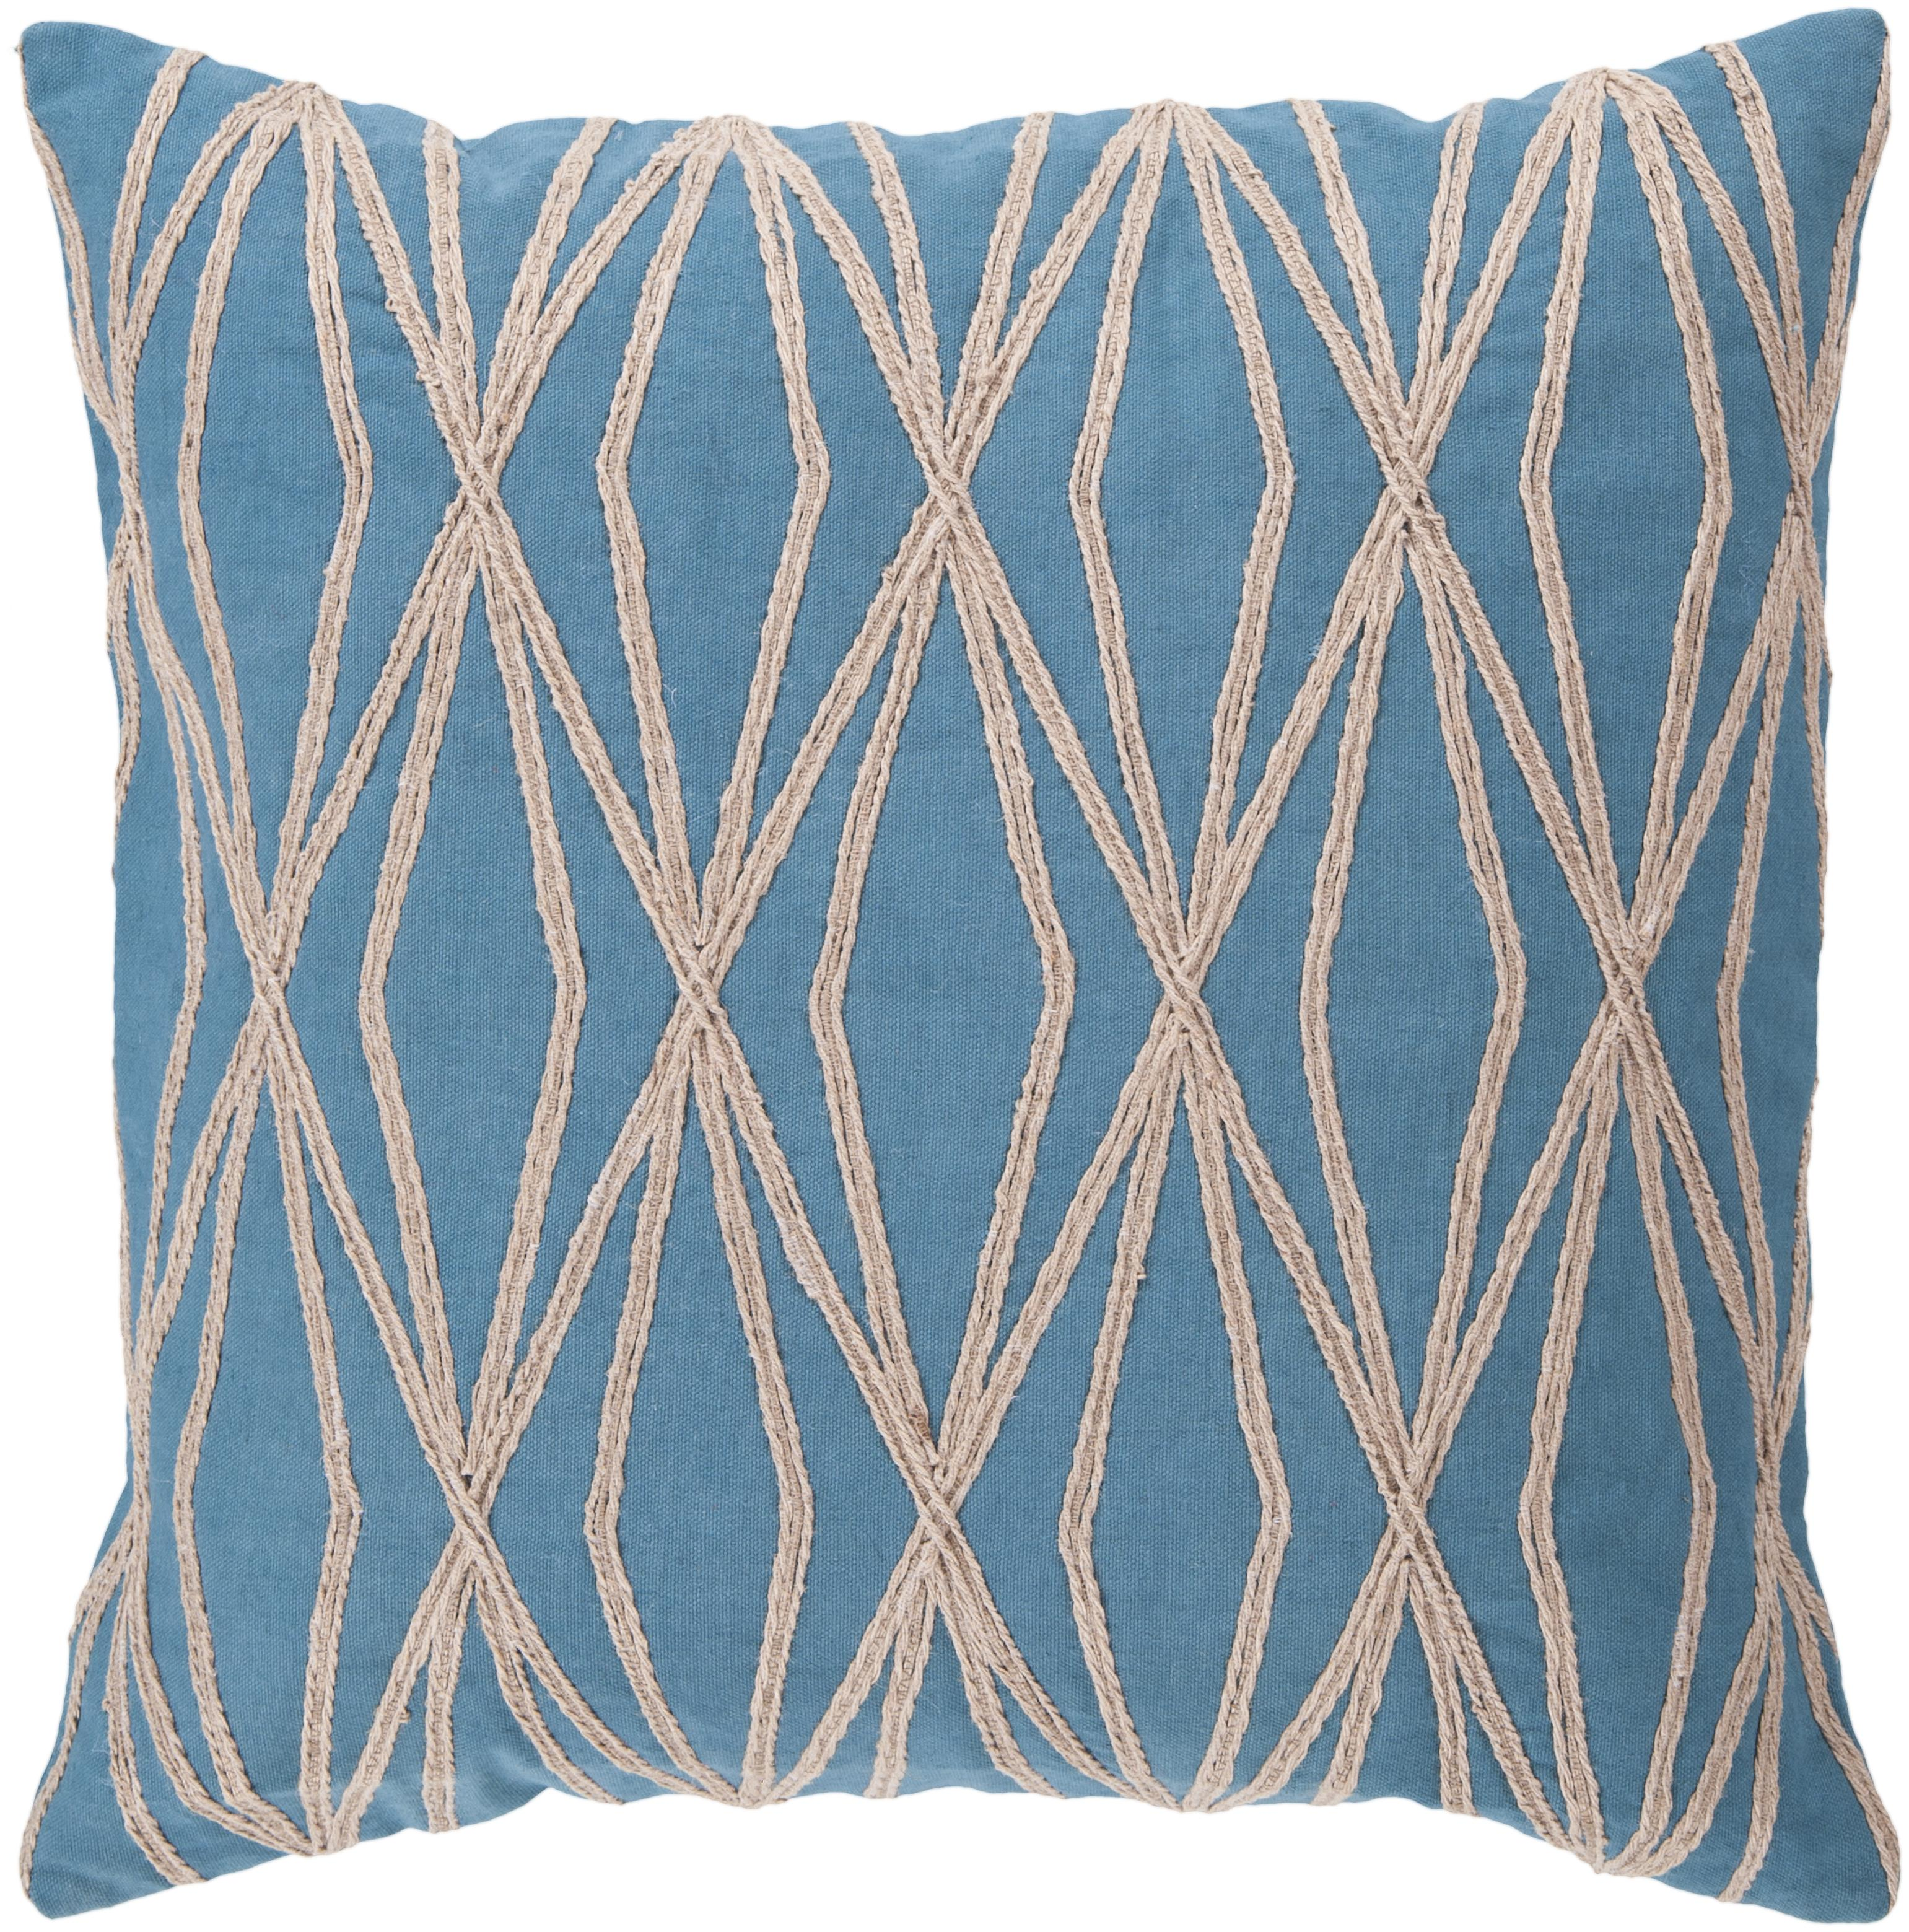 "Surya Pillows 22"" x 22"" Pillow - Item Number: COM022-2222P"